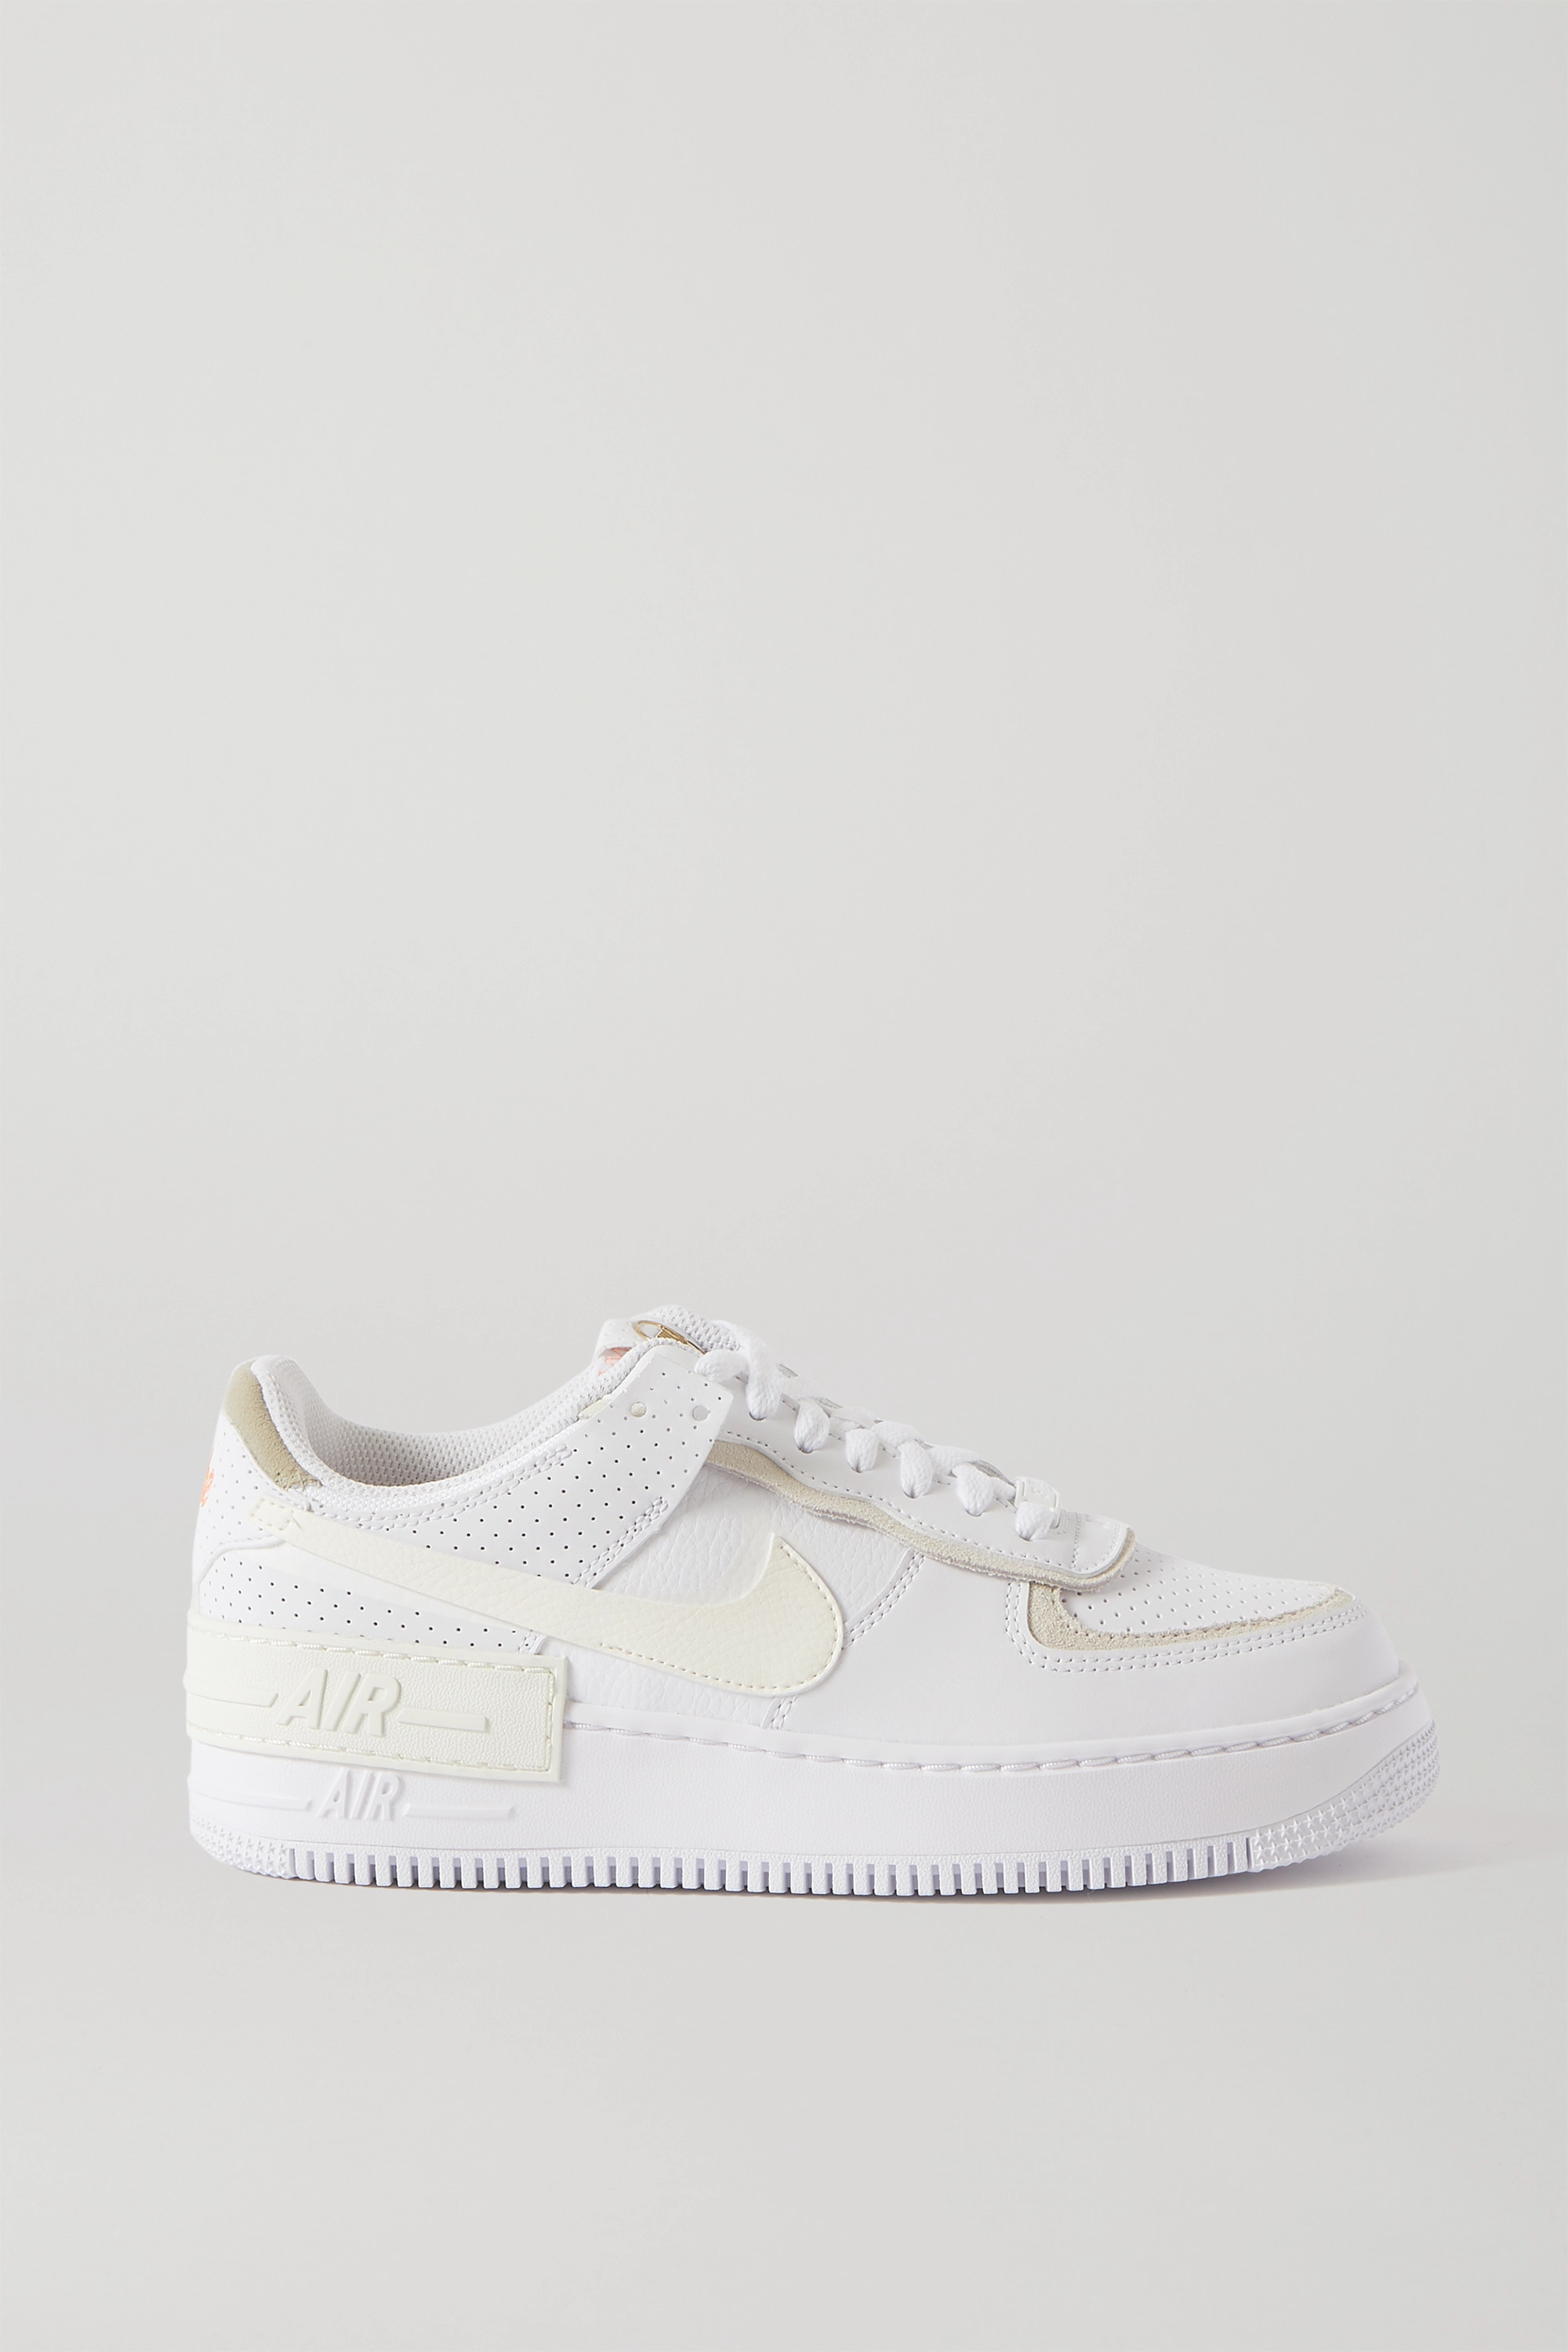 Nike Air Force 1 Shadow suede-trimmed leather sneakers